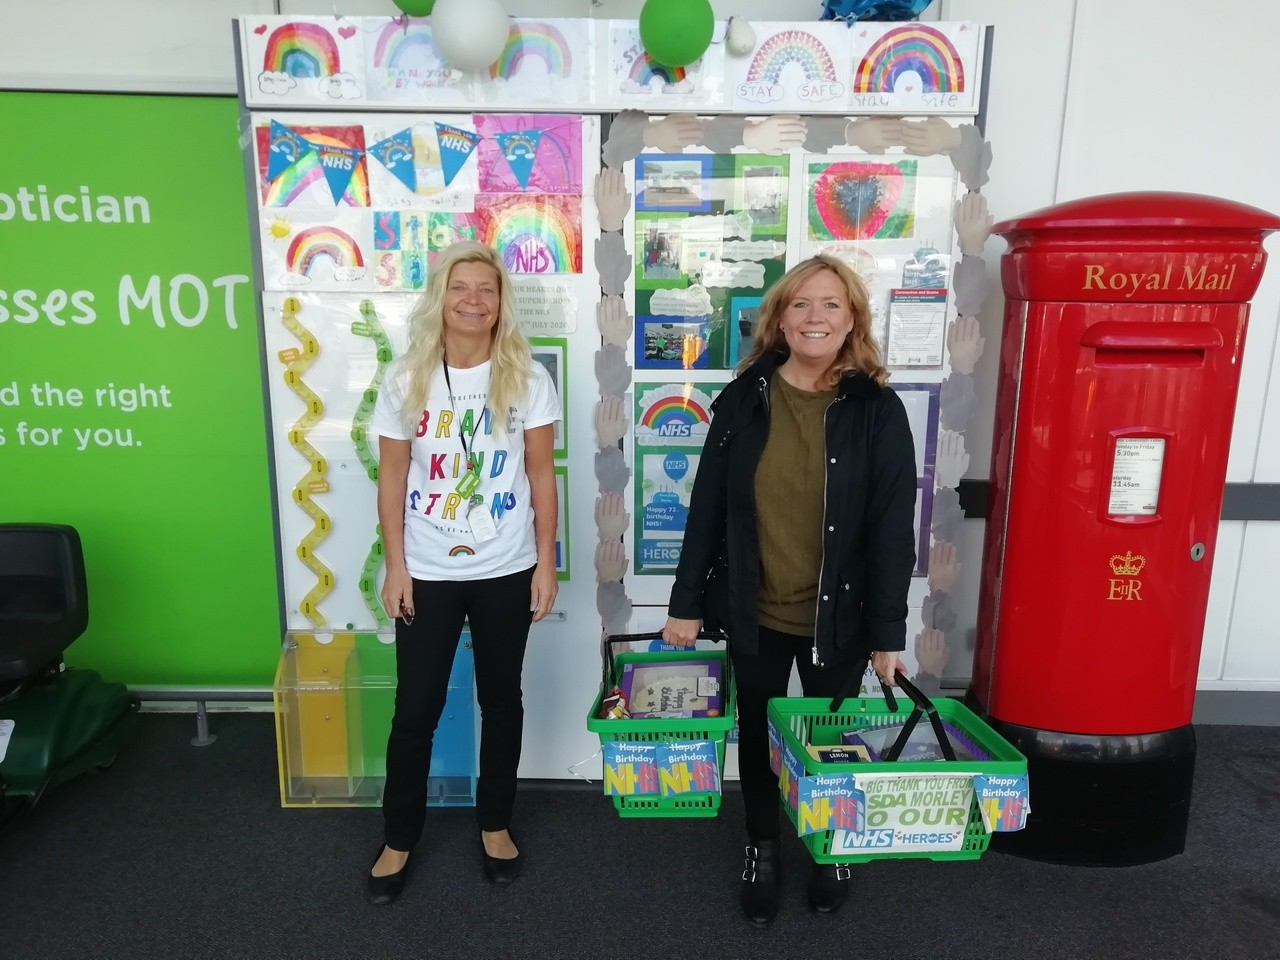 Hospital donation | Asda Morley